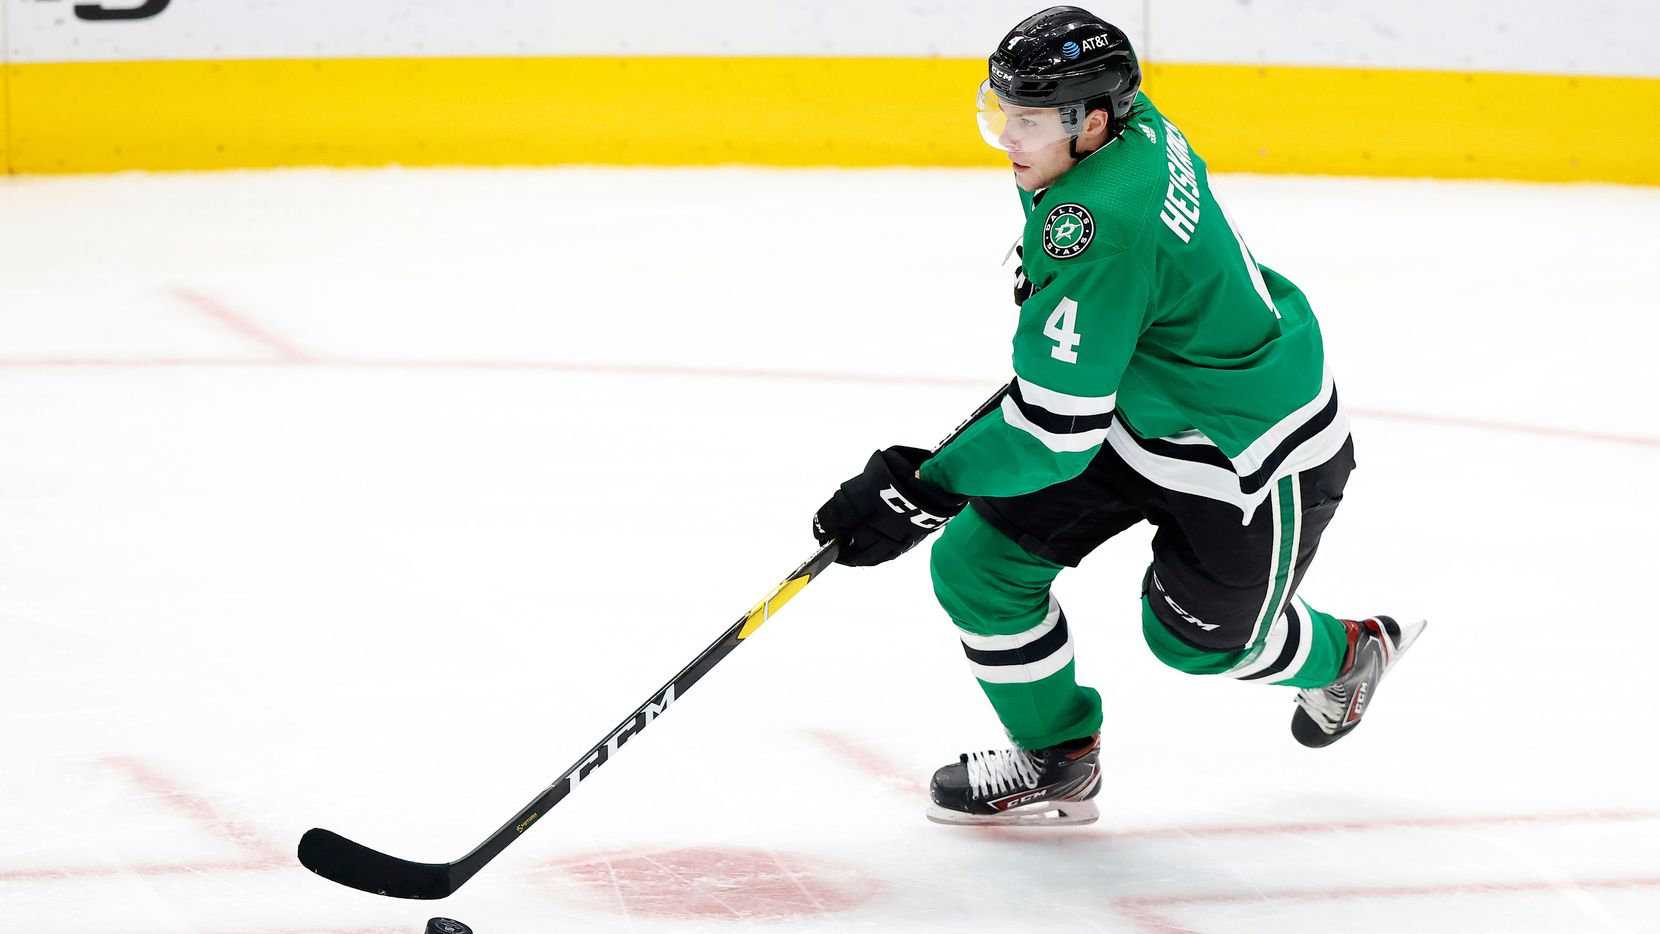 FILE — Dallas Stars defenseman Miro Heiskanen (4) brings the puck up ice against the Columbus Blue Jackets during the third period at the American Airlines Center in Dallas, Thursday, March 4, 2021. The Stars fell to the Blue Jackets, 3-2.